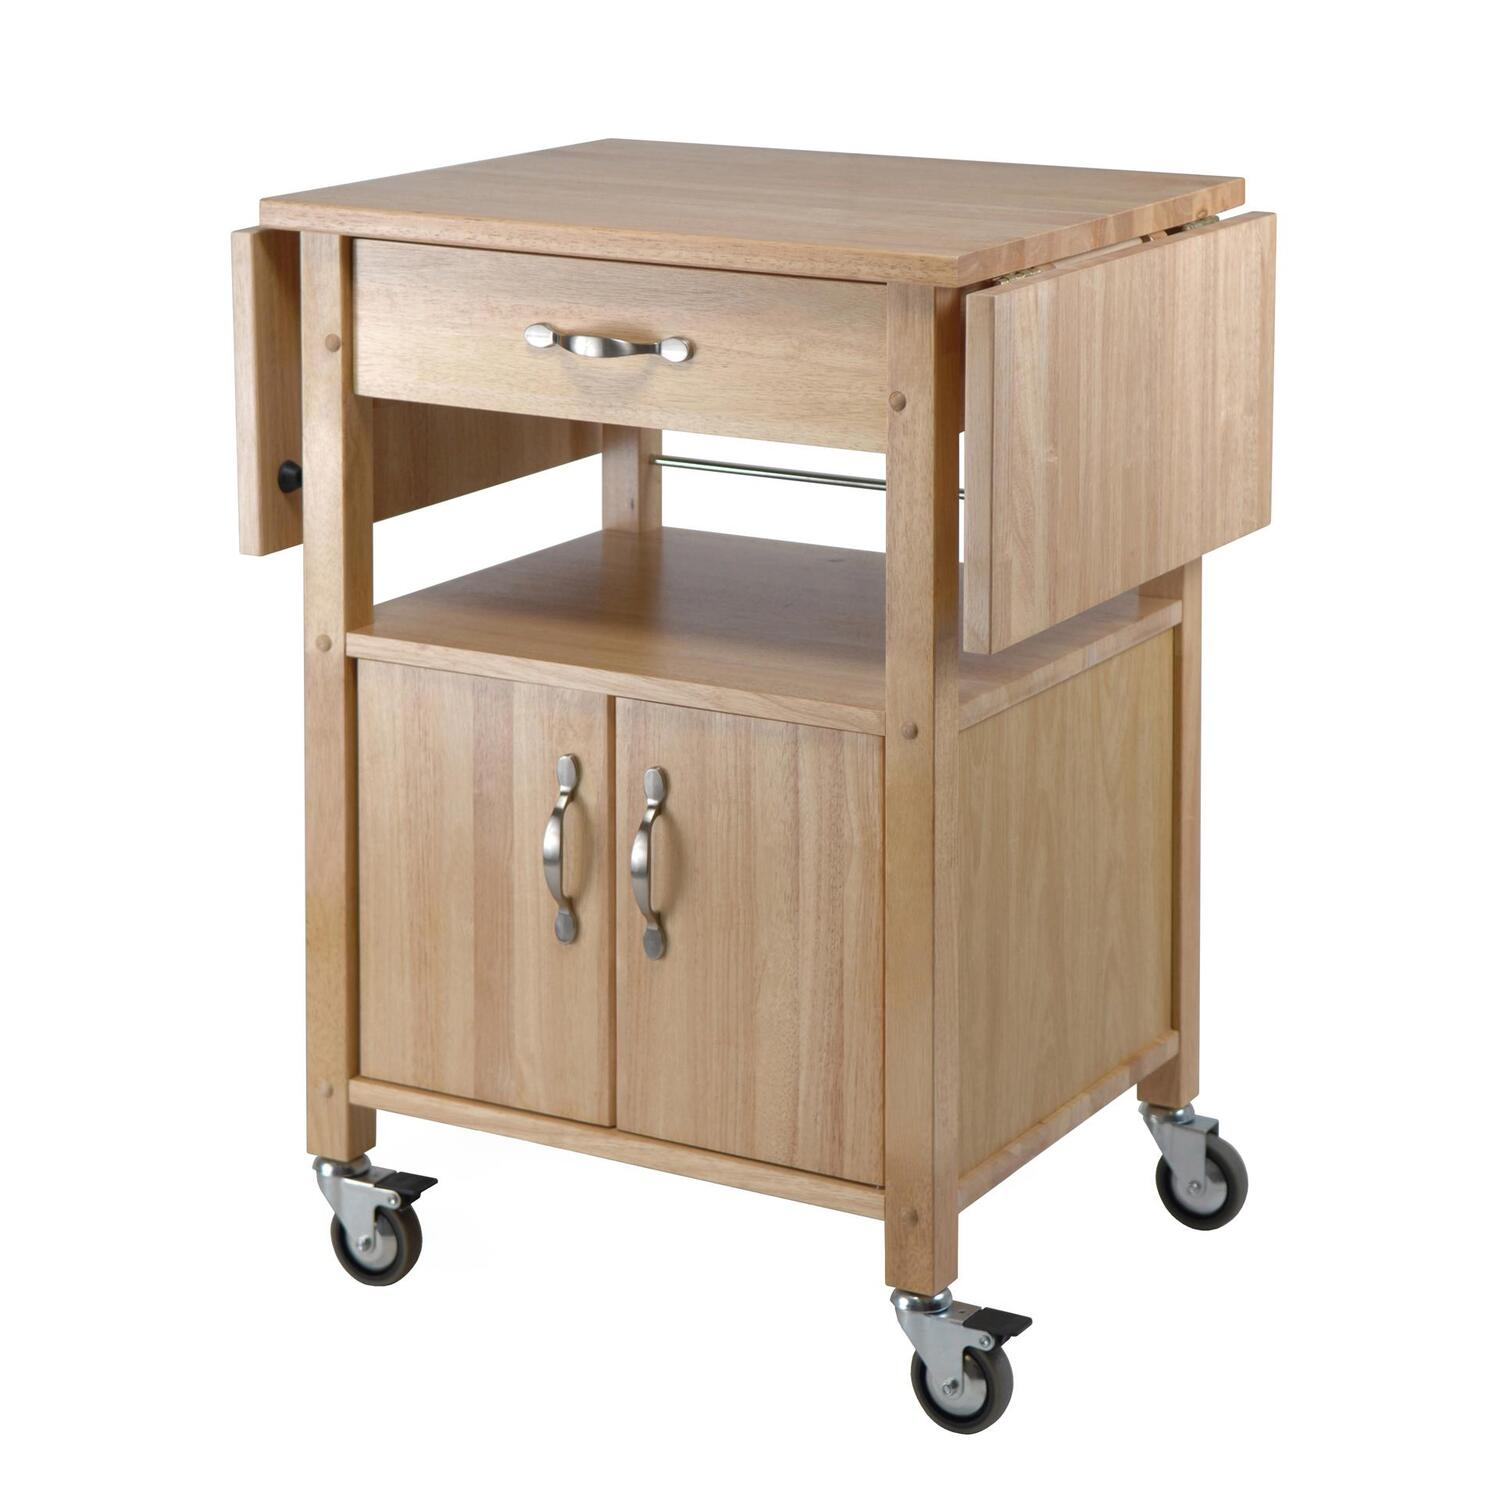 kitchen storage cart flooring ideas for furniture home goods appliances athletic gear fitness